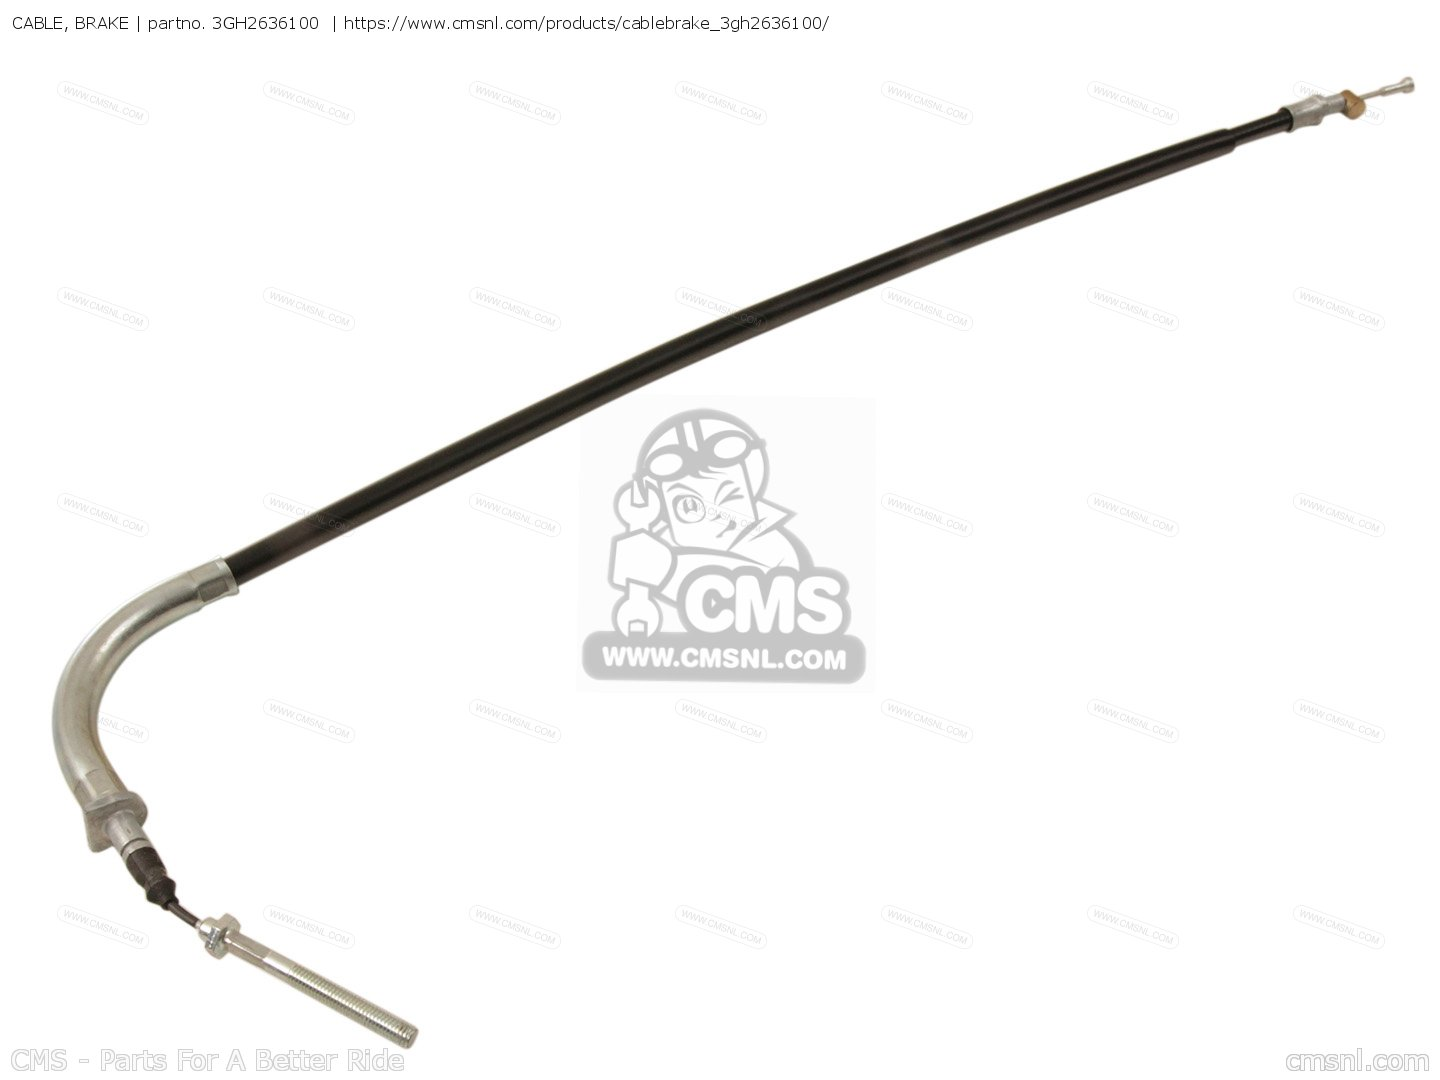 Cable Brake For Yfm250w Moto 4